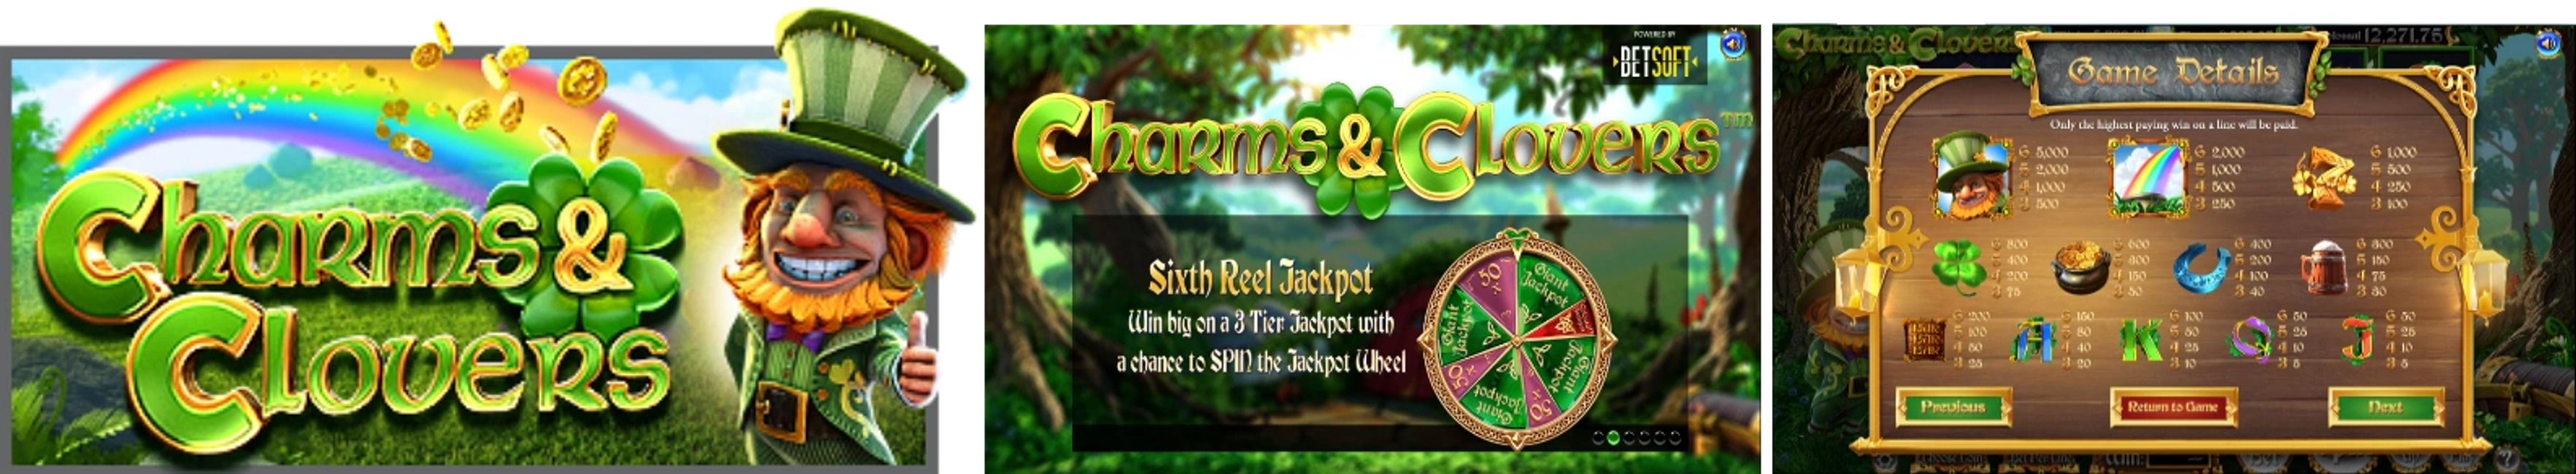 Charms & Clovers Online Video Slot Review